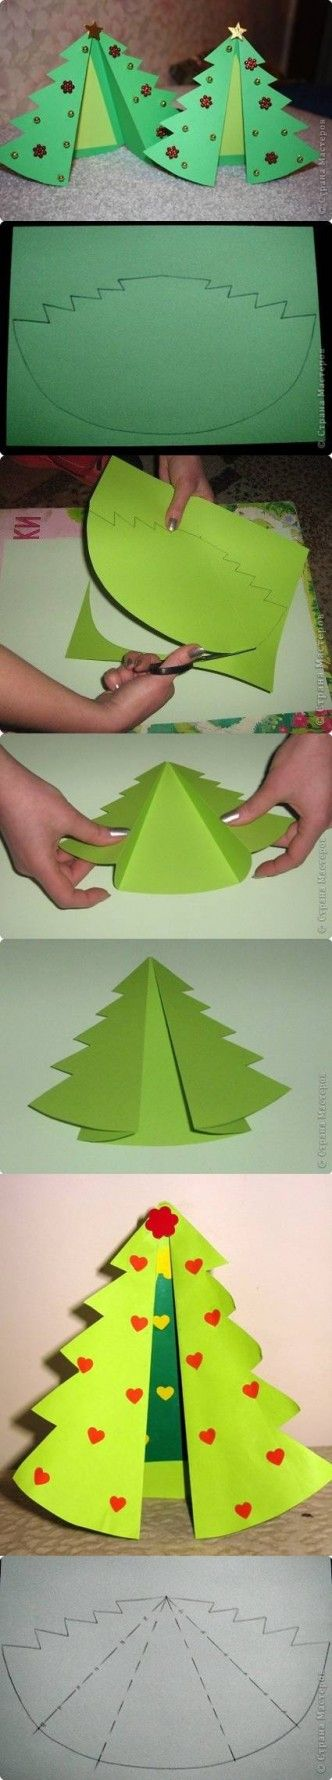 DIY Tree Style Card DIY Projects